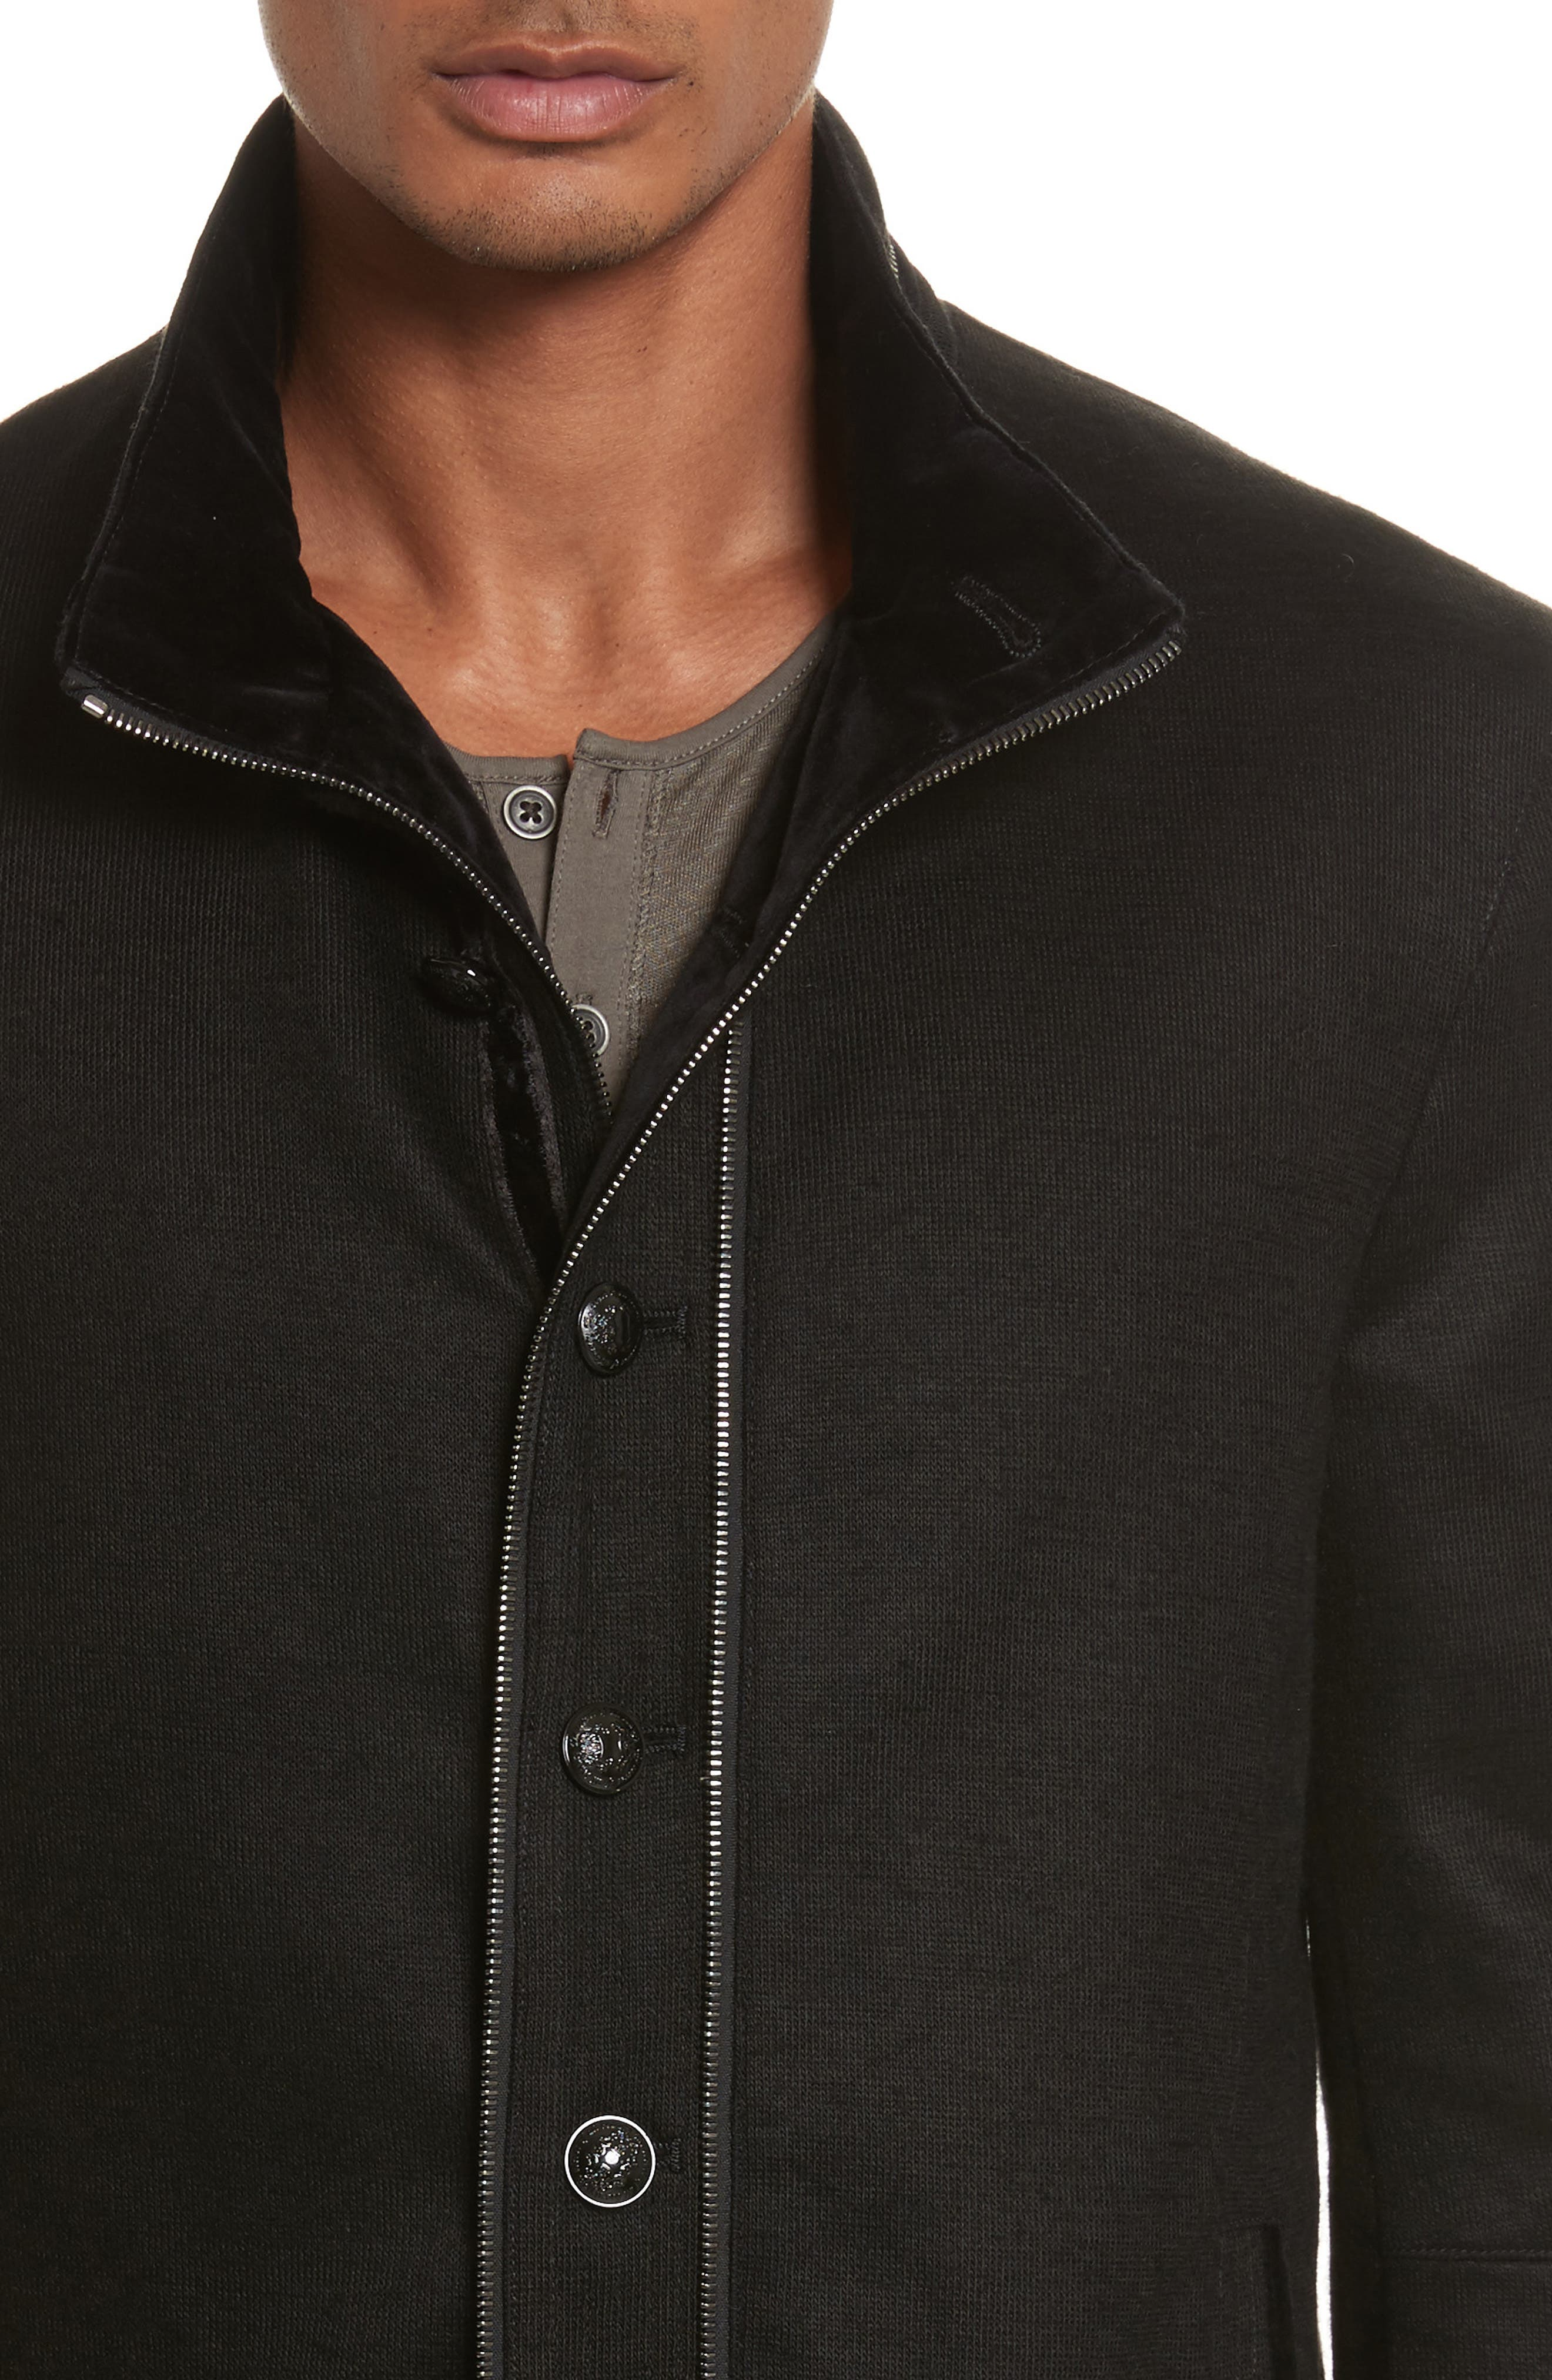 Cotton & Wool Jacket,                             Alternate thumbnail 4, color,                             Black